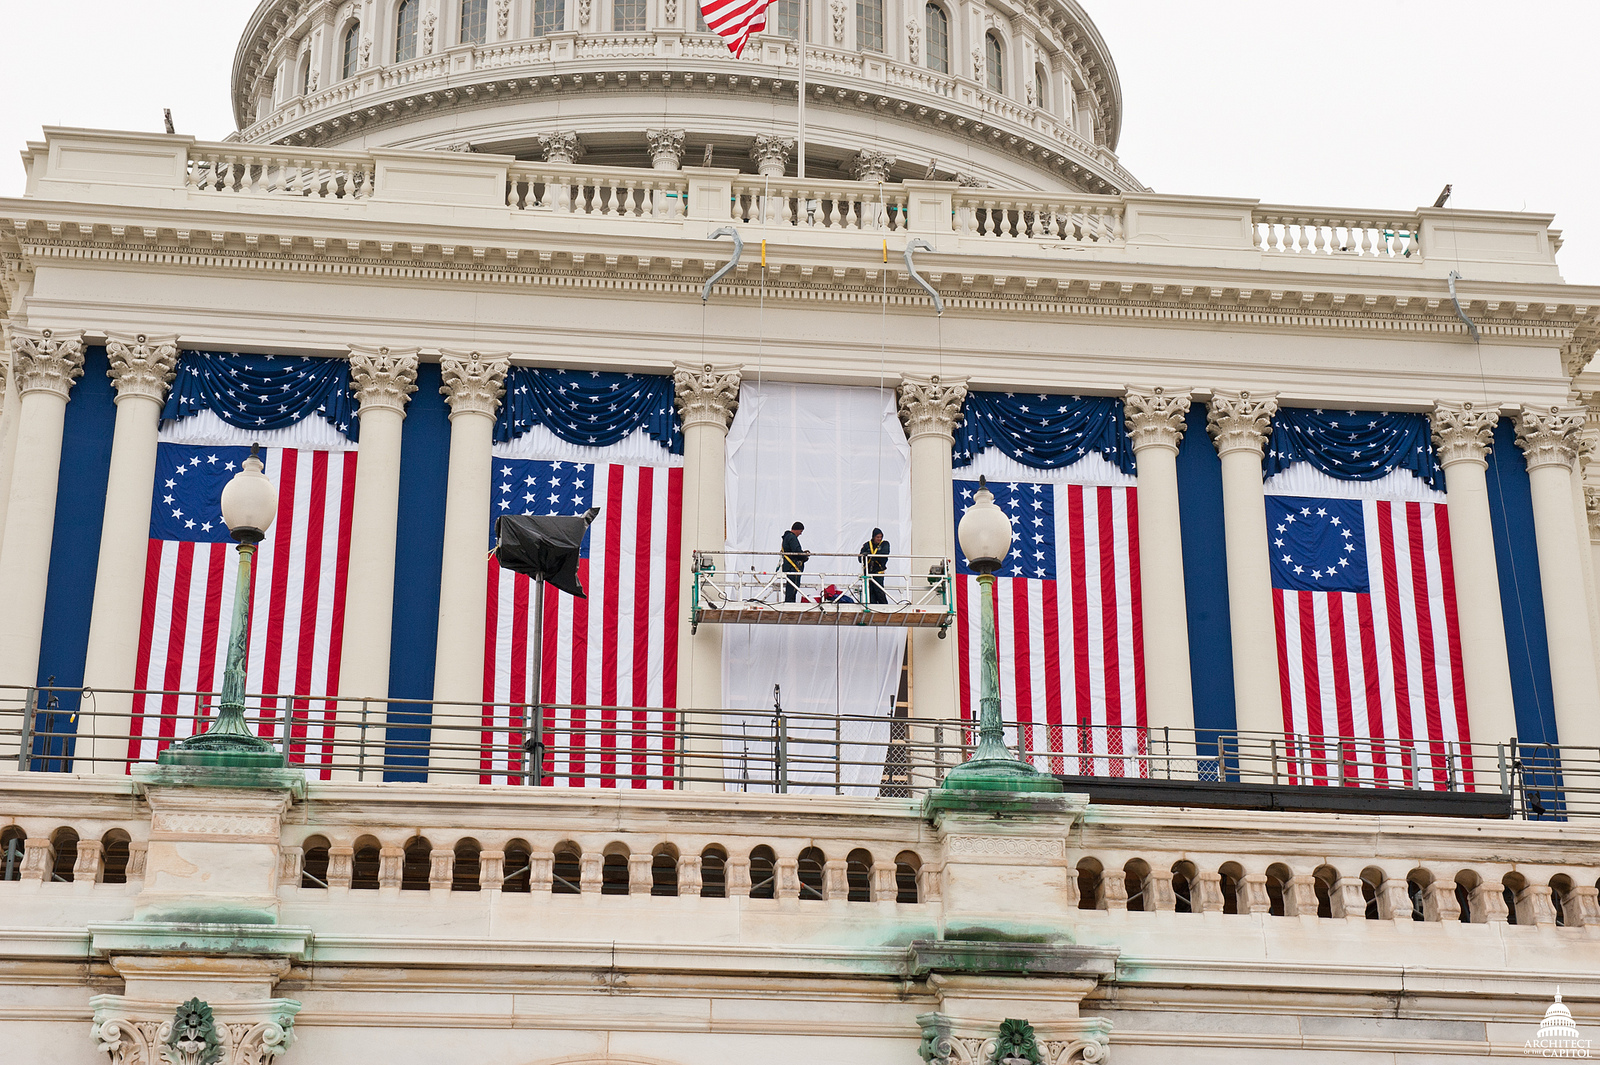 AOC employees hang flags and bunting in preparation for the 2009 Inaugural